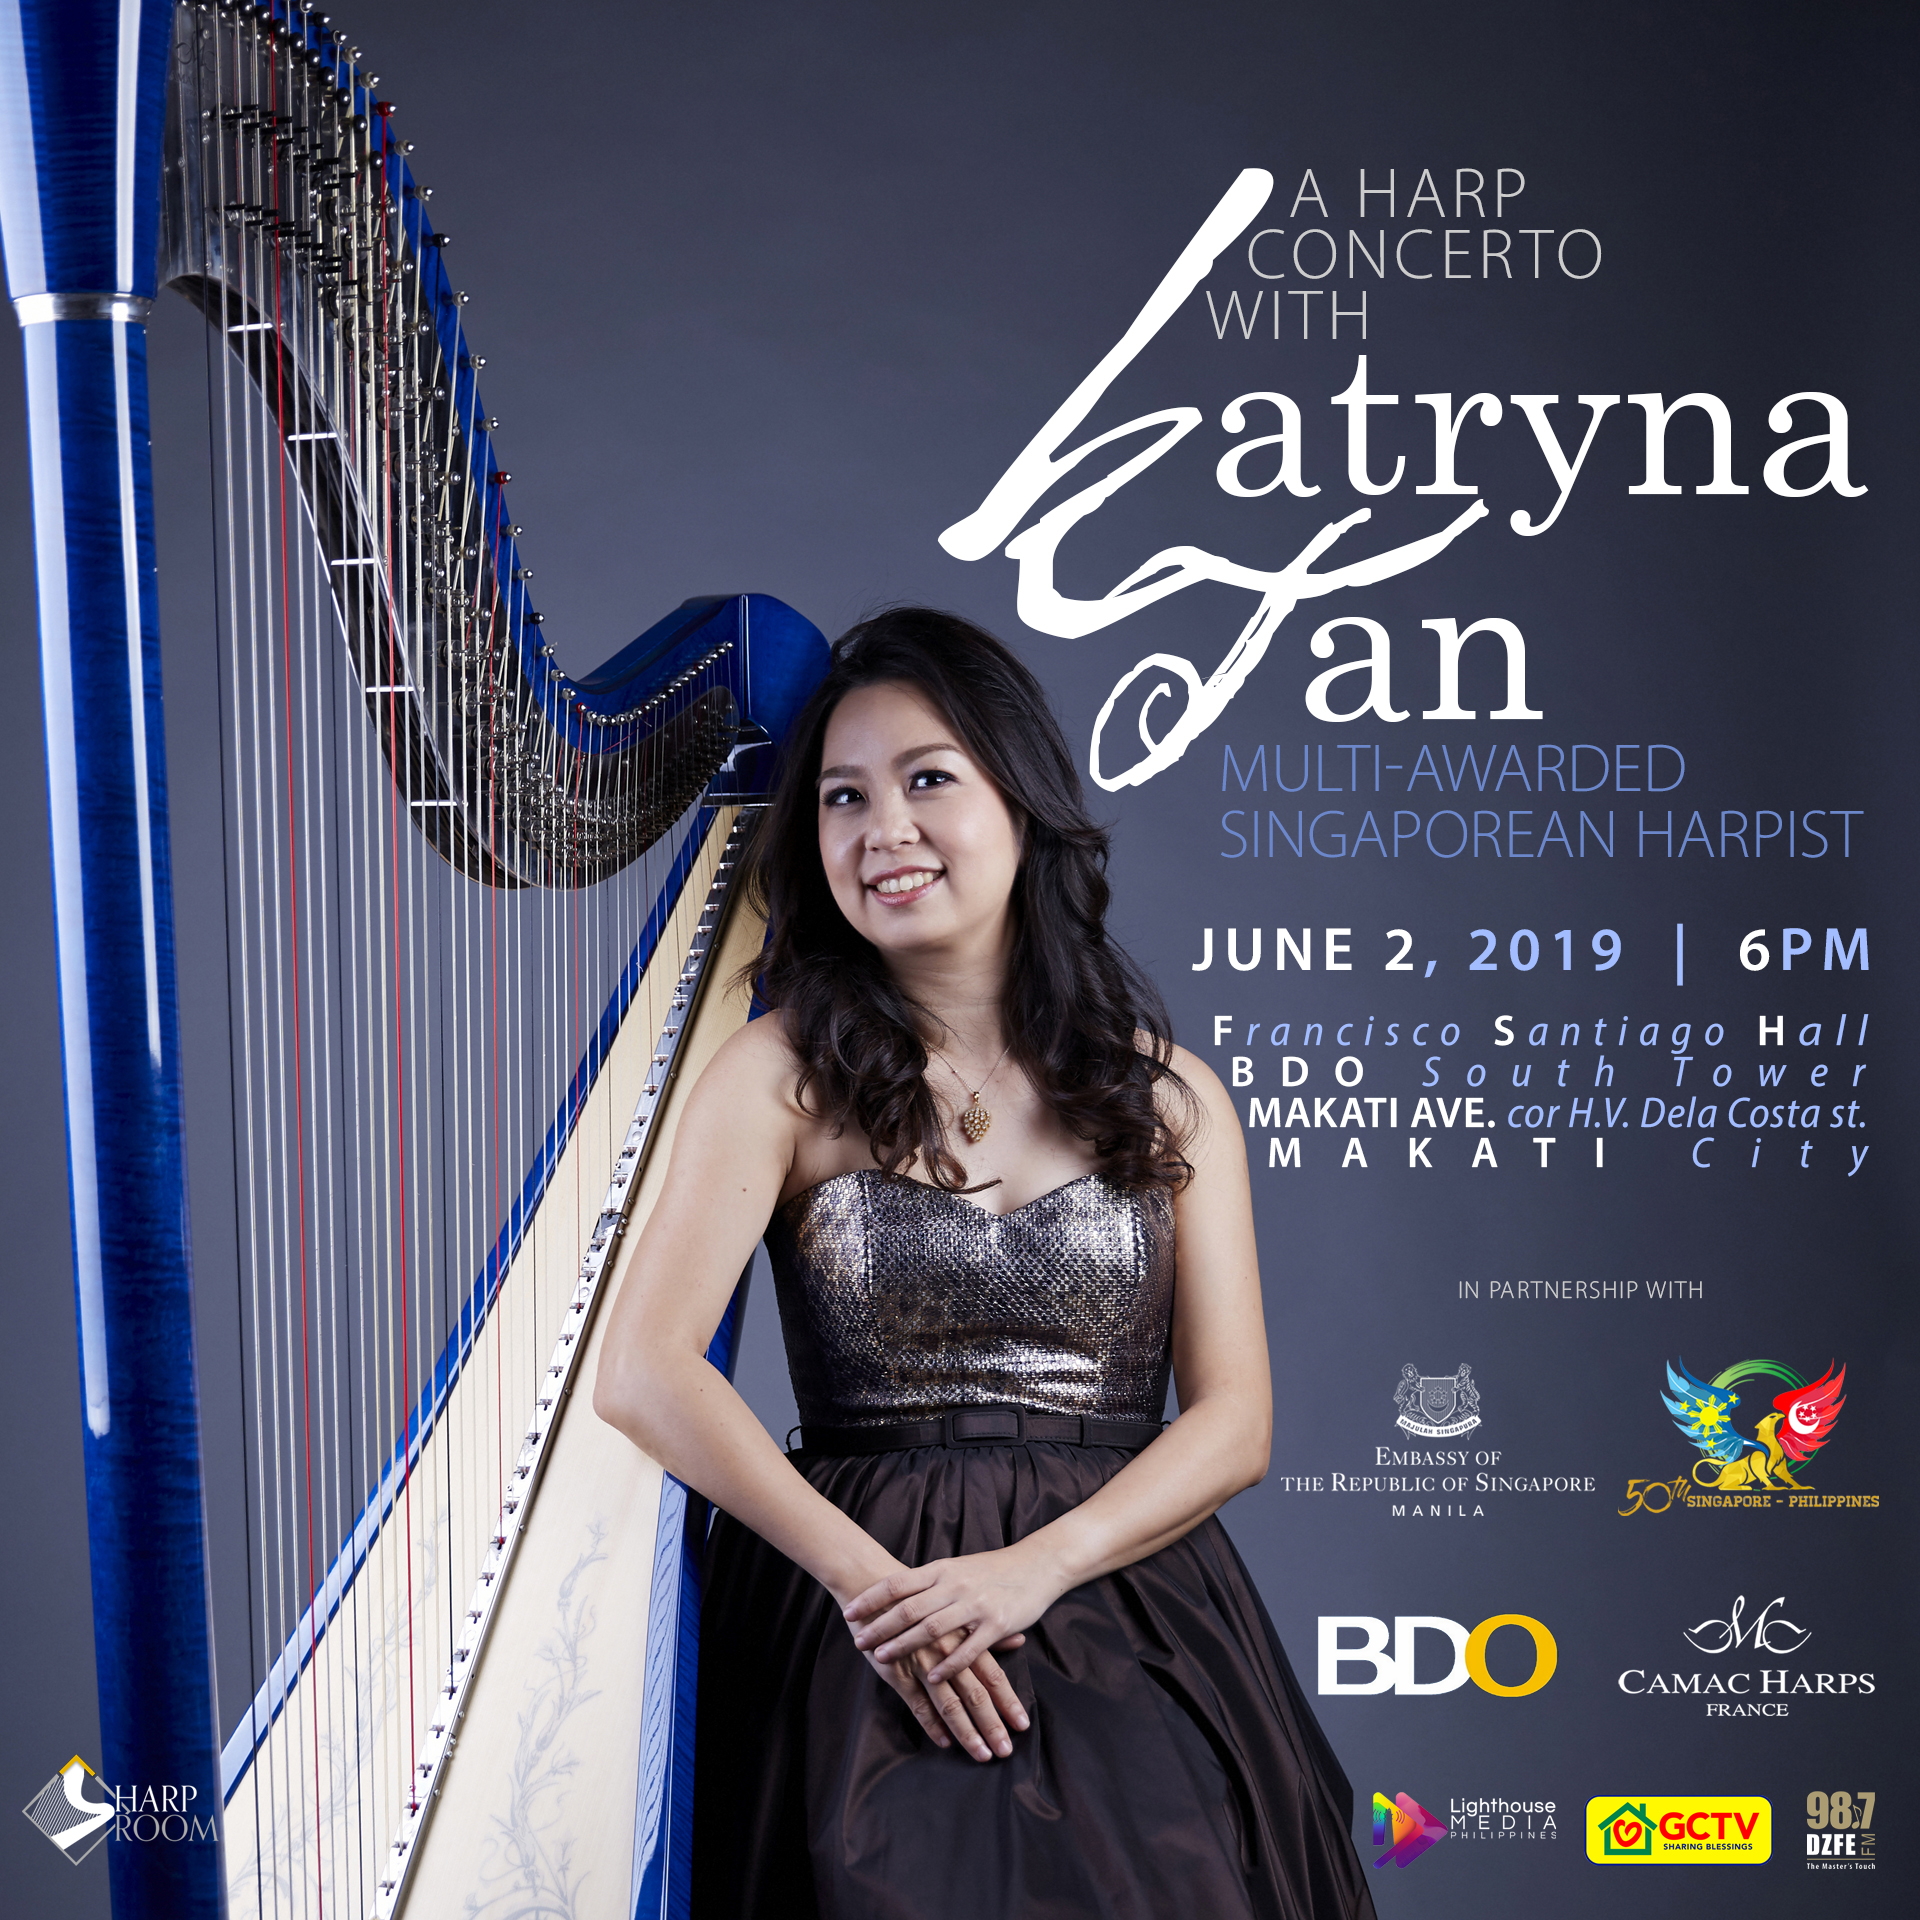 A Harp Concerto with Katryna Tan